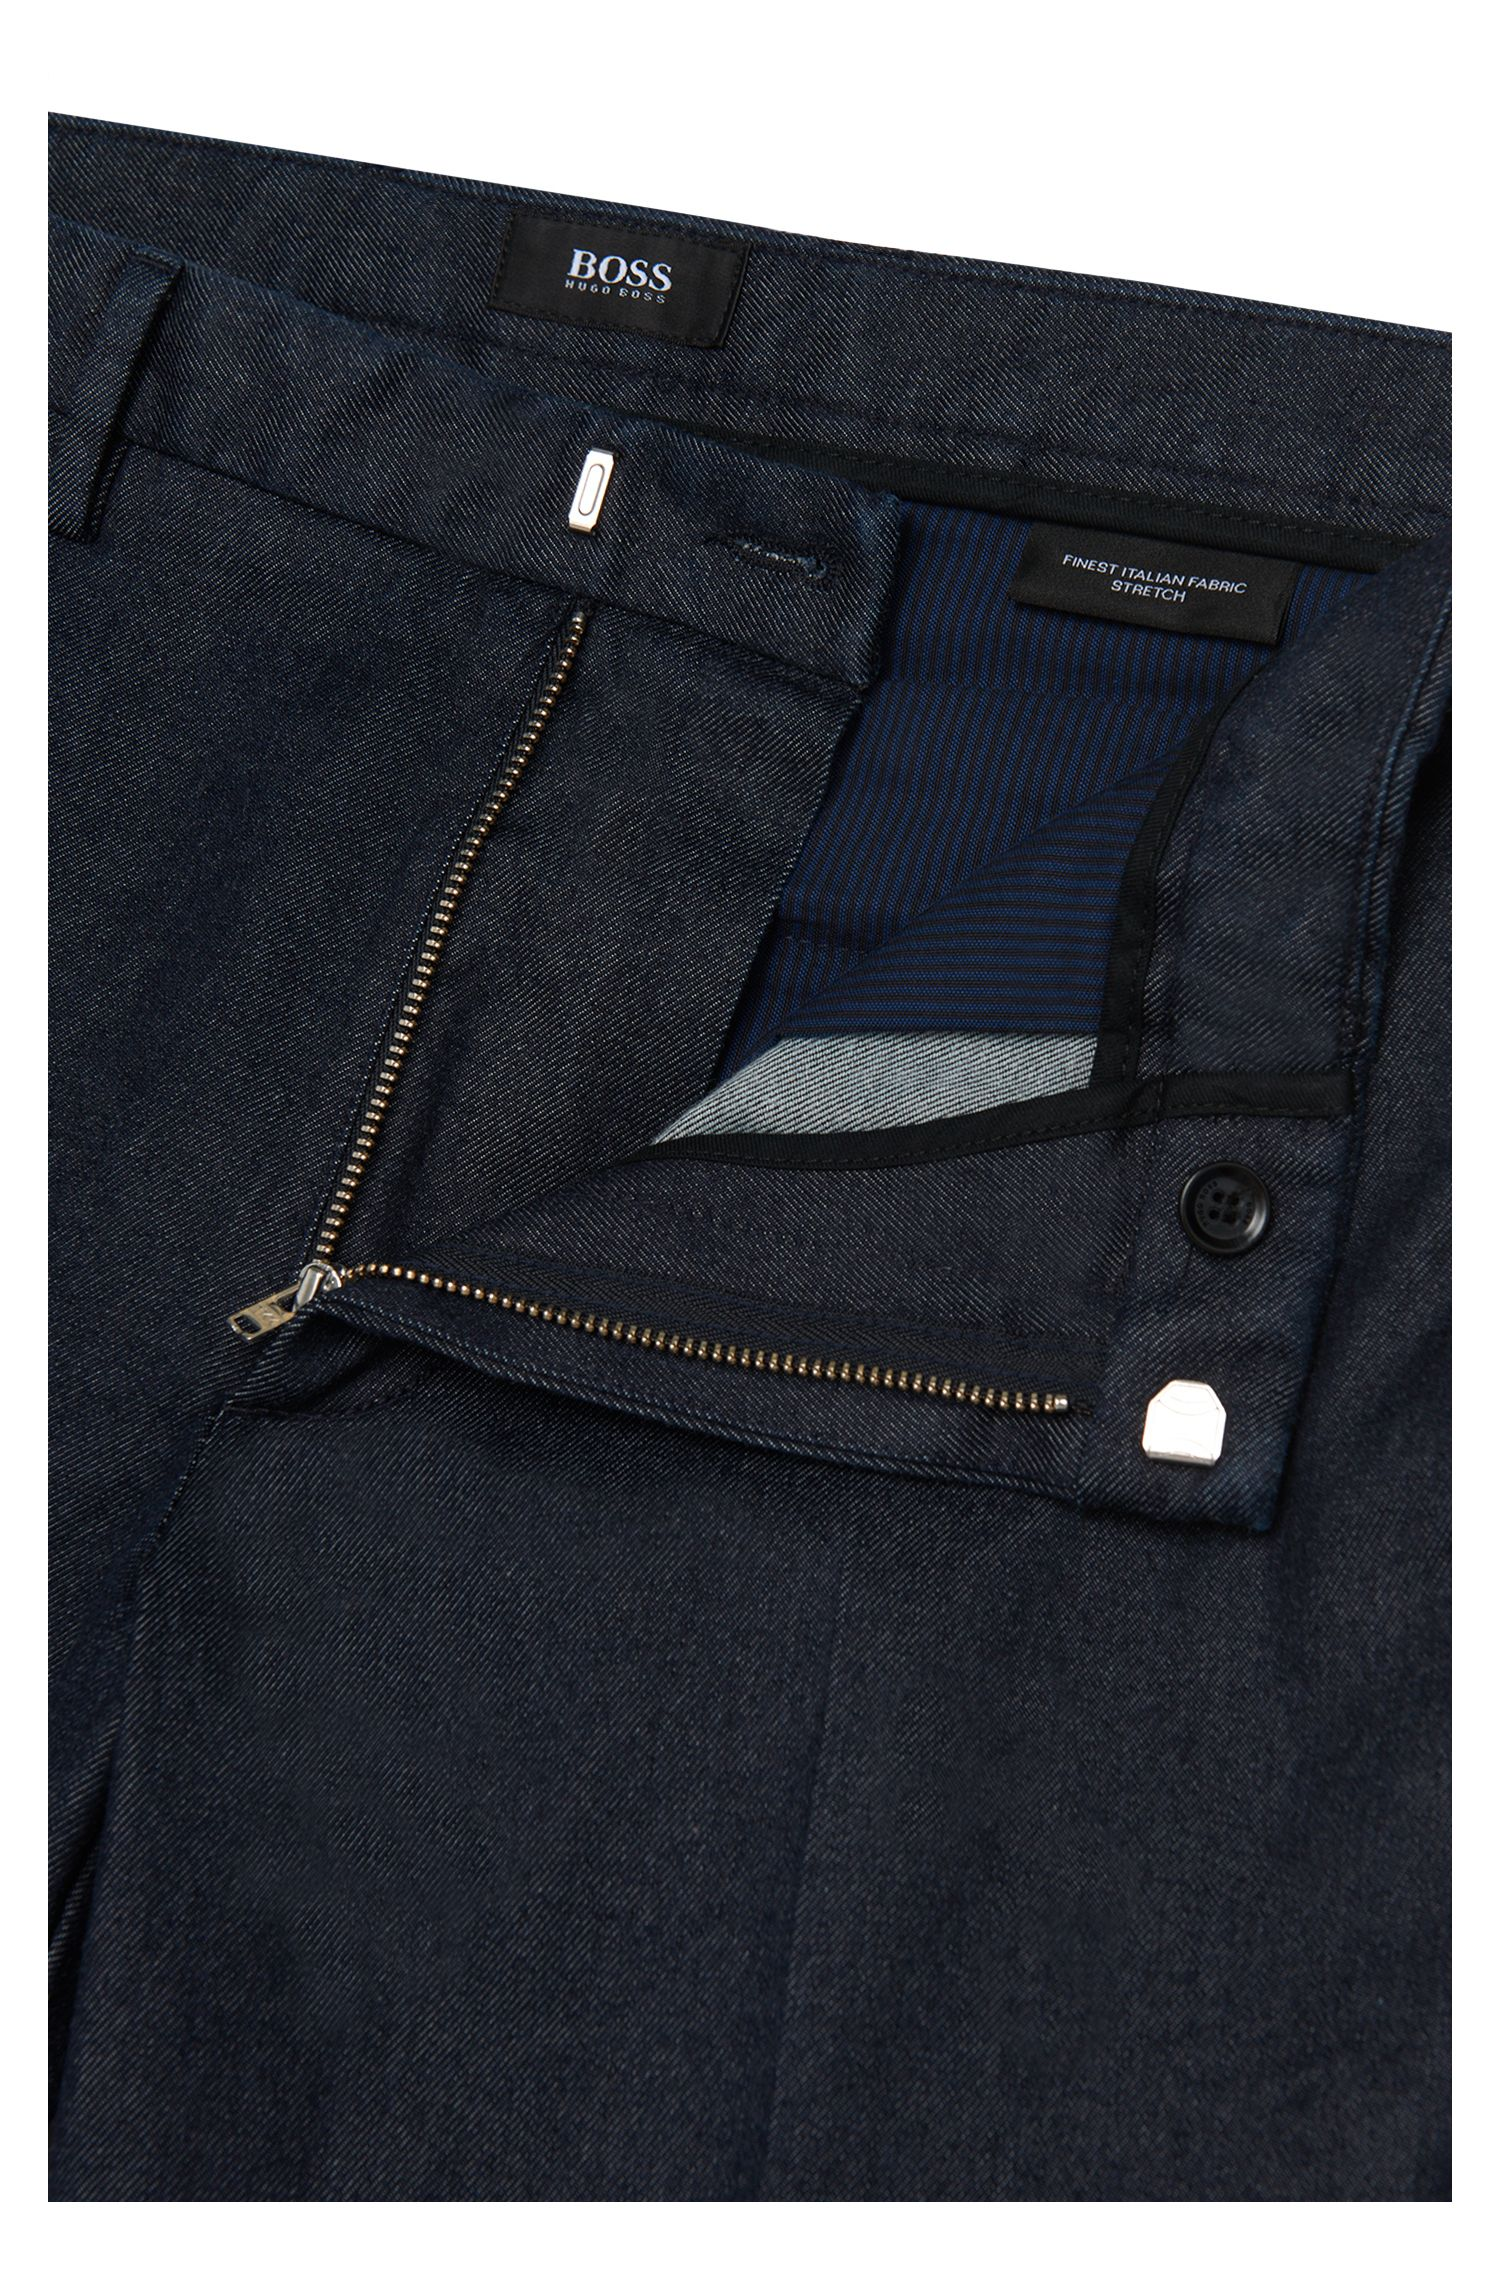 Slim-Fit Chino aus Stretch-Baumwolle im Denim-Stil: 'Kaito3-W'